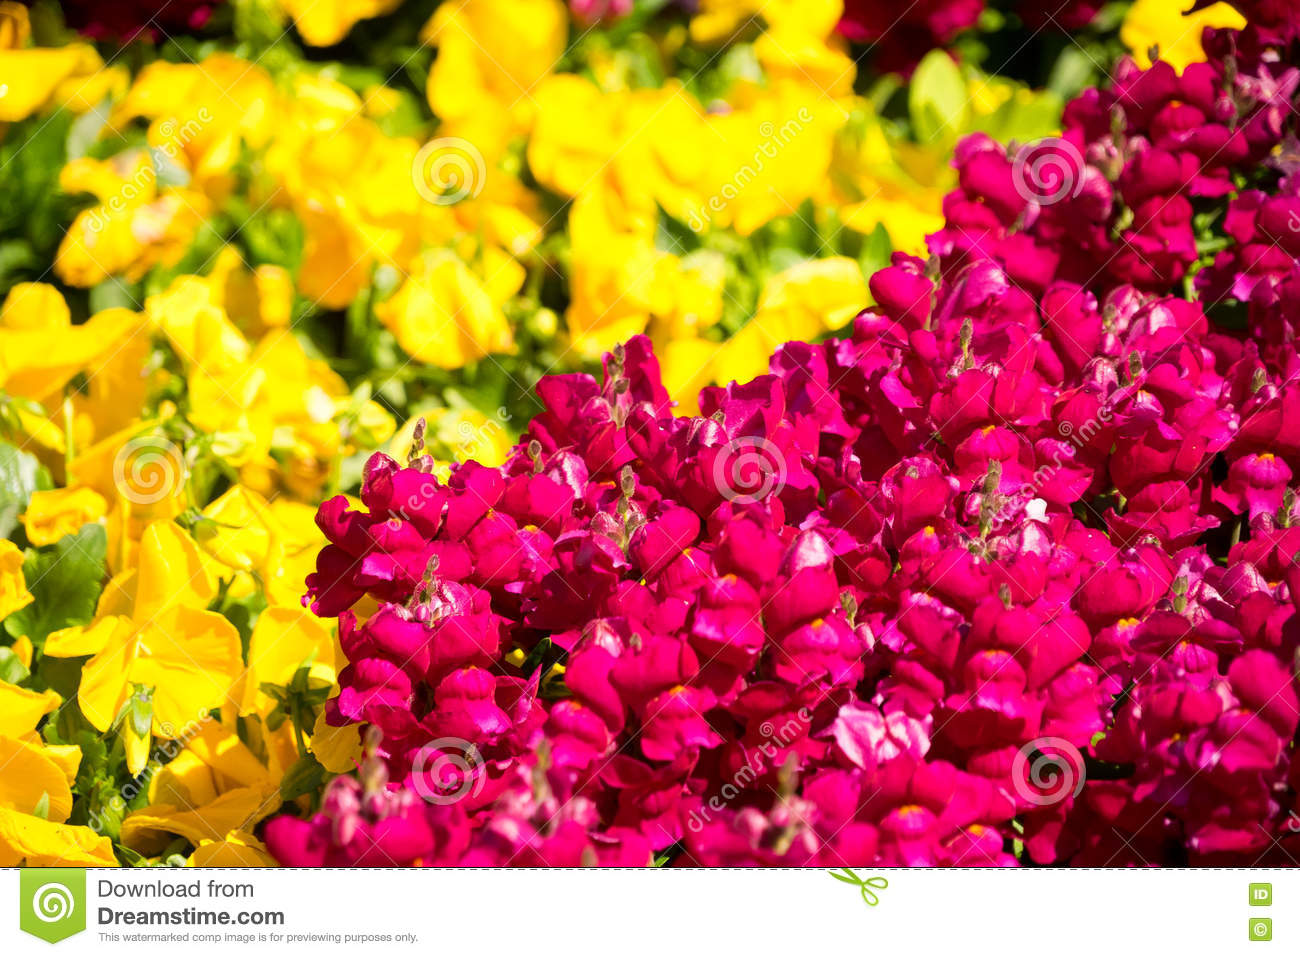 Yellow and red flowers background stock photo image of pansy download yellow and red flowers background stock photo image of pansy effect 78336312 mightylinksfo